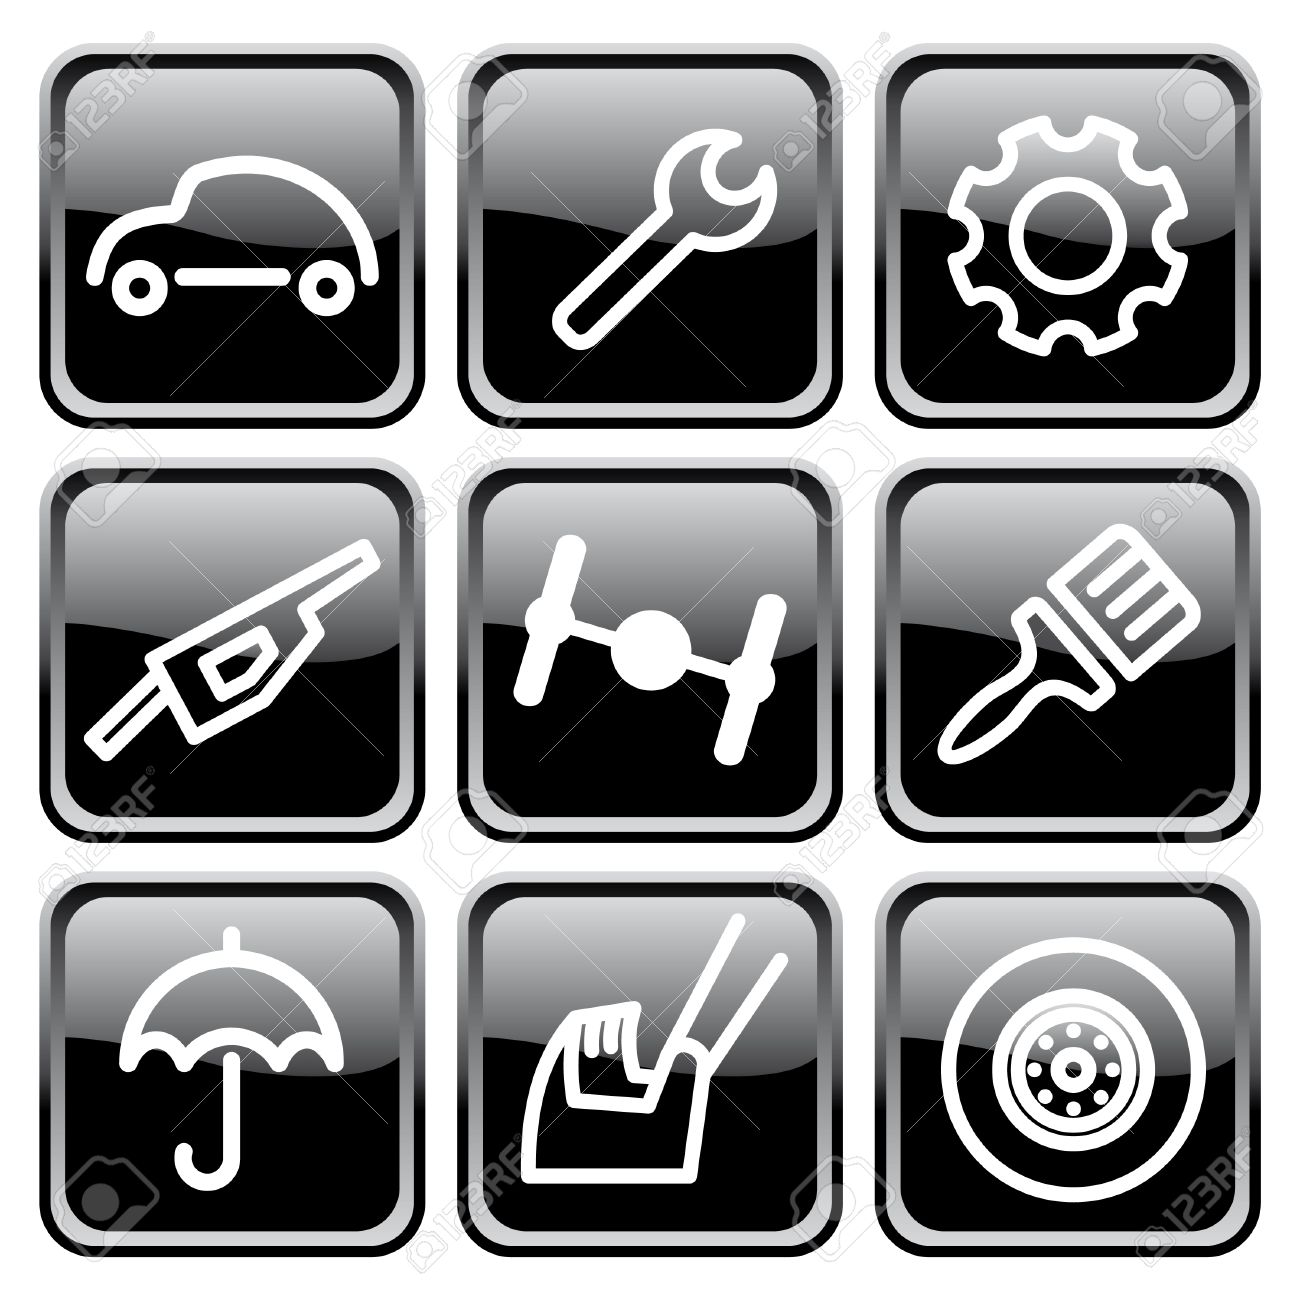 Cars spare parts and service icons Stock Vector - 6636310